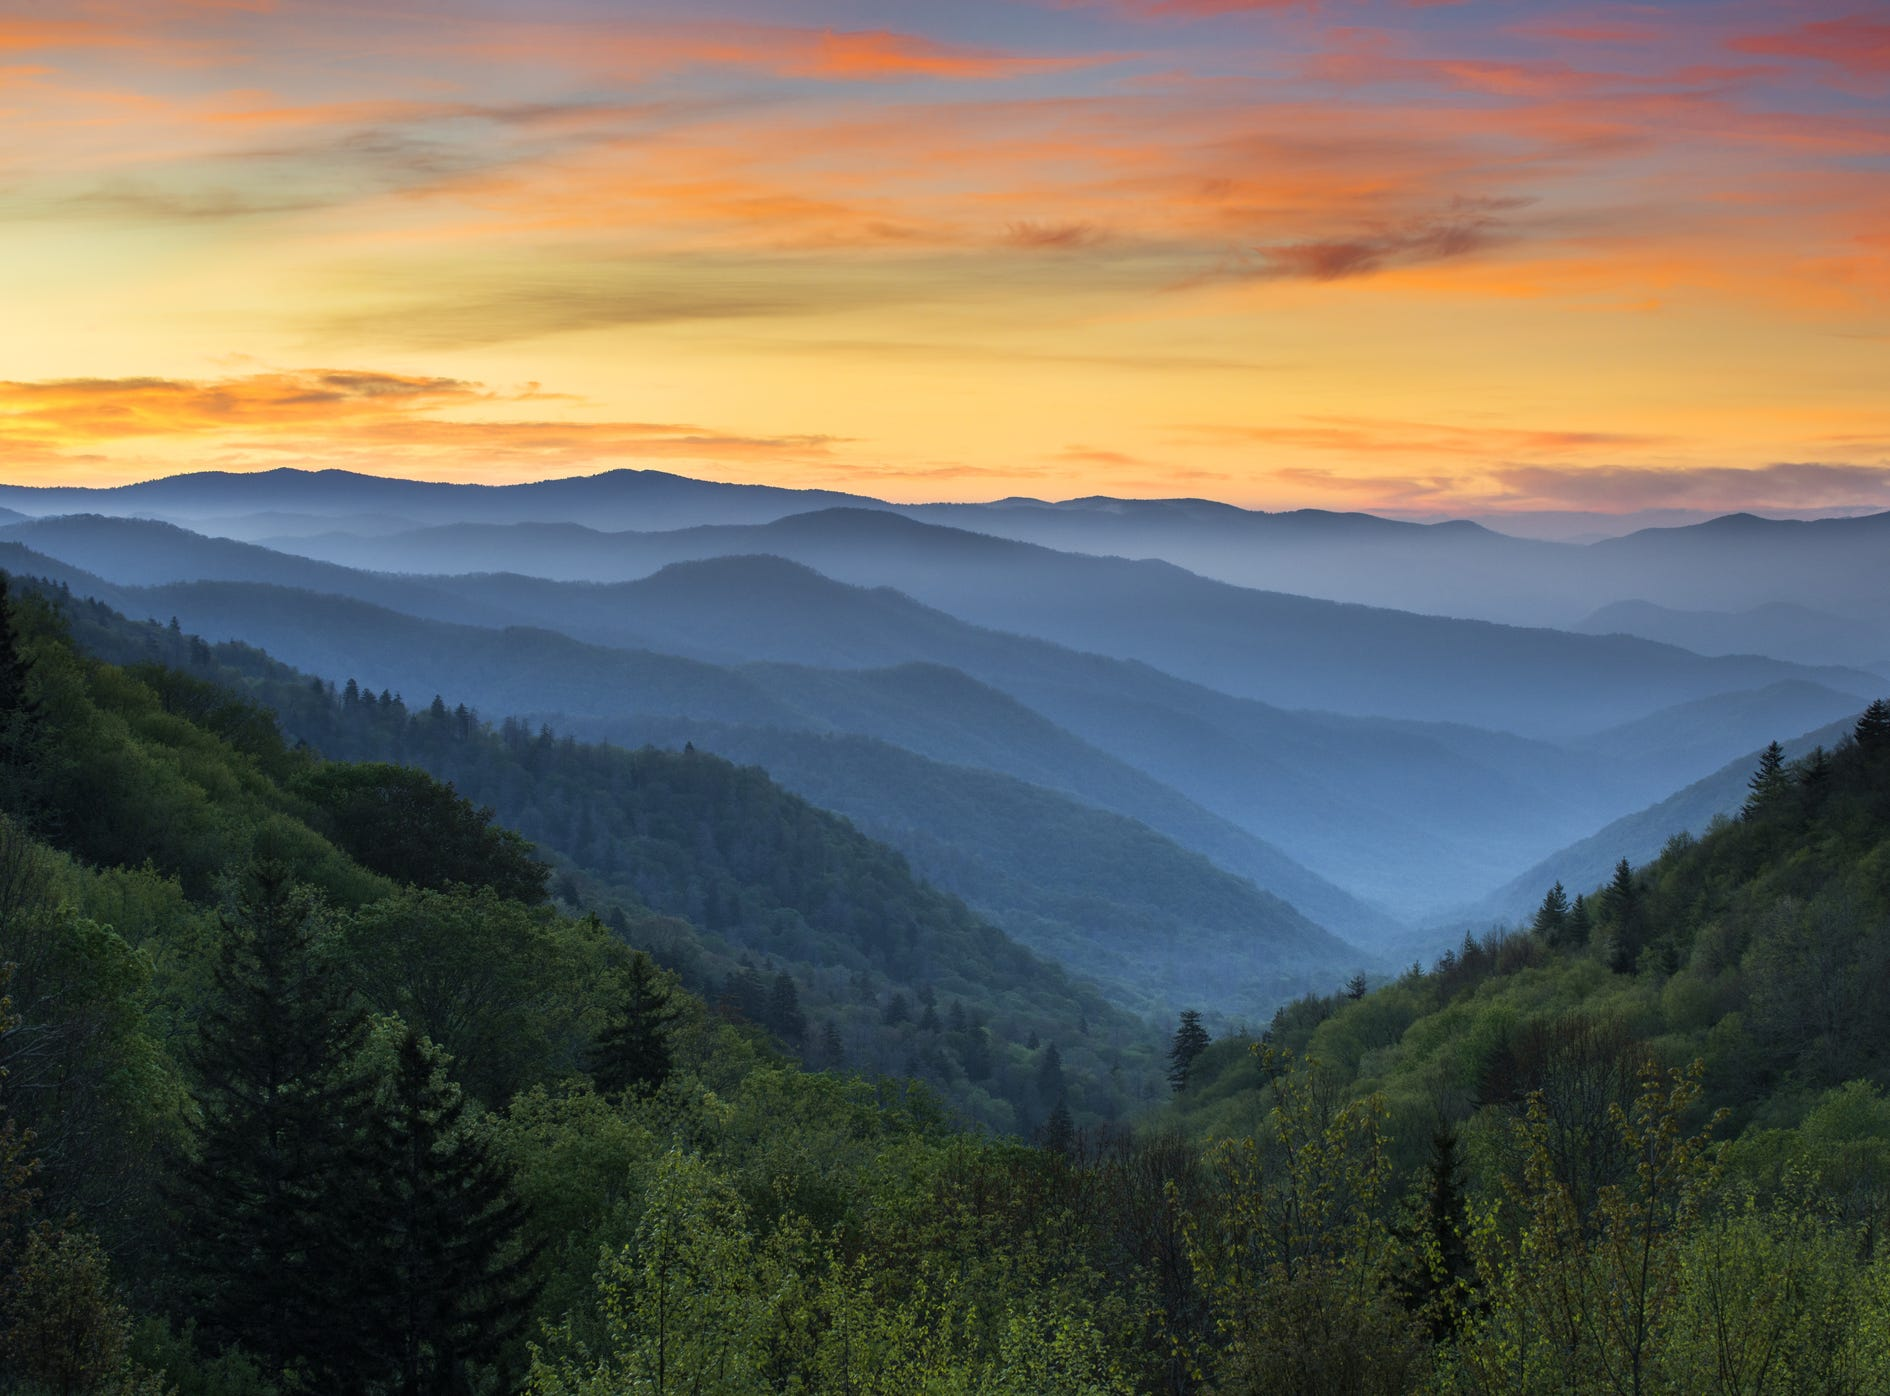 "No. 5: Great Smoky Mountains; 191% increase in bookings, 190% increase in searches. ""Home to America's most visited national park due to its central location, general ease in getting there, and affordability, the Smokies are calling. Two of the park's most iconic trails (among the 800 miles of trails to choose from) are reopening after a wildfire two years ago."""